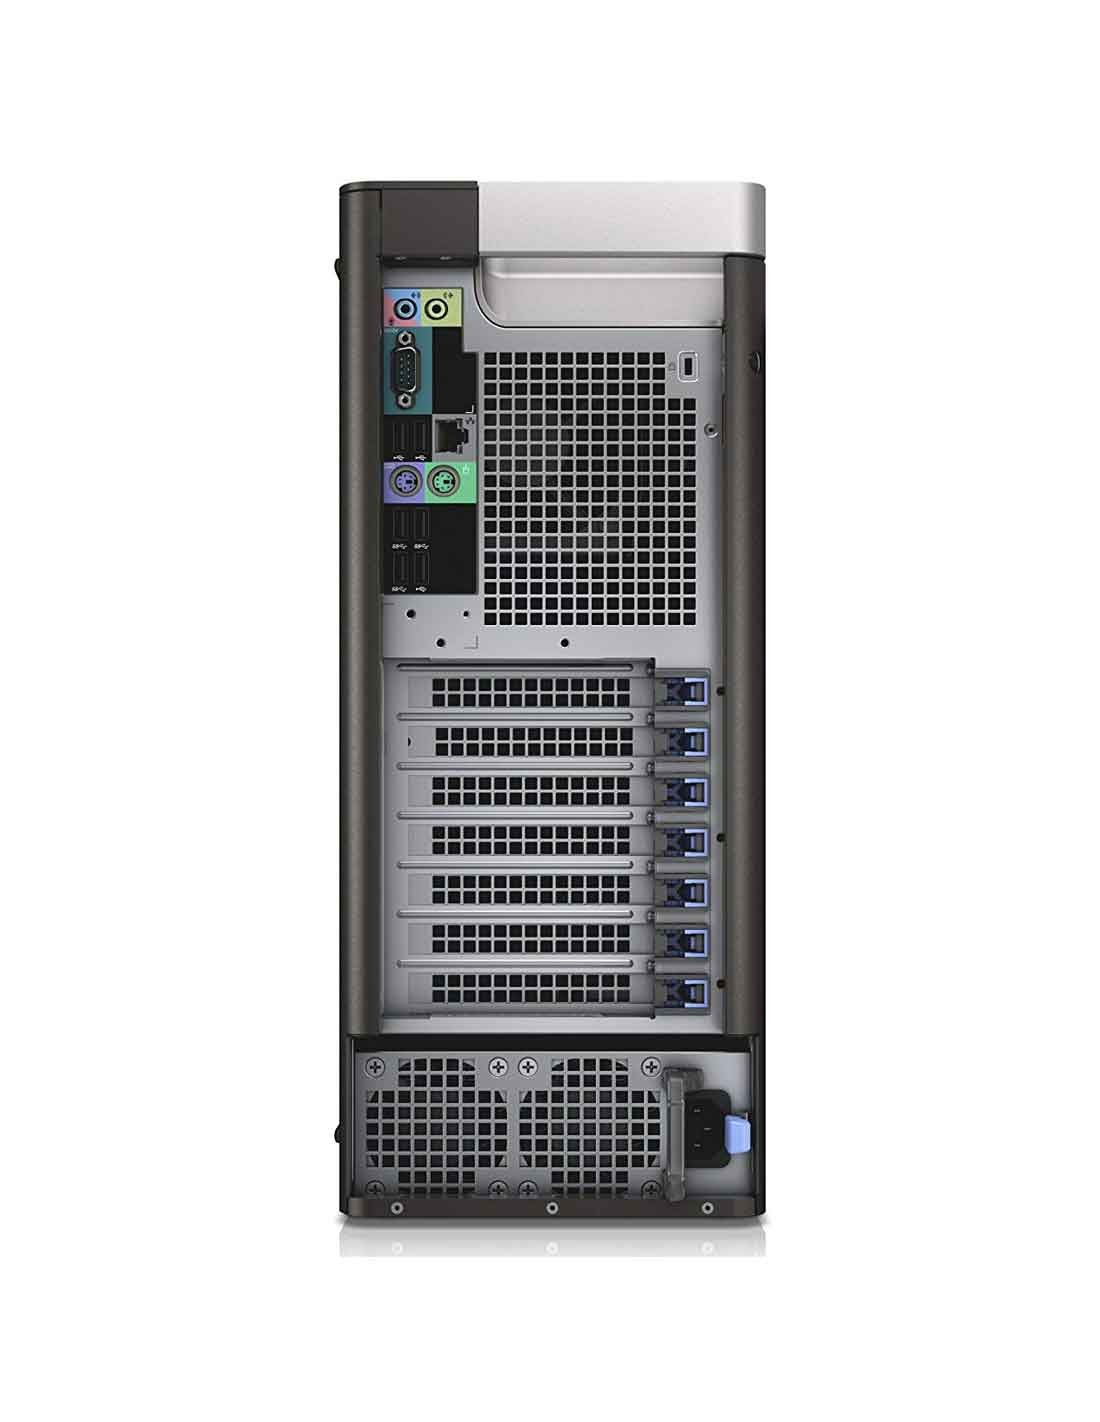 Dell Precision T5810 Tower 32GB images and photos in Dubai online store